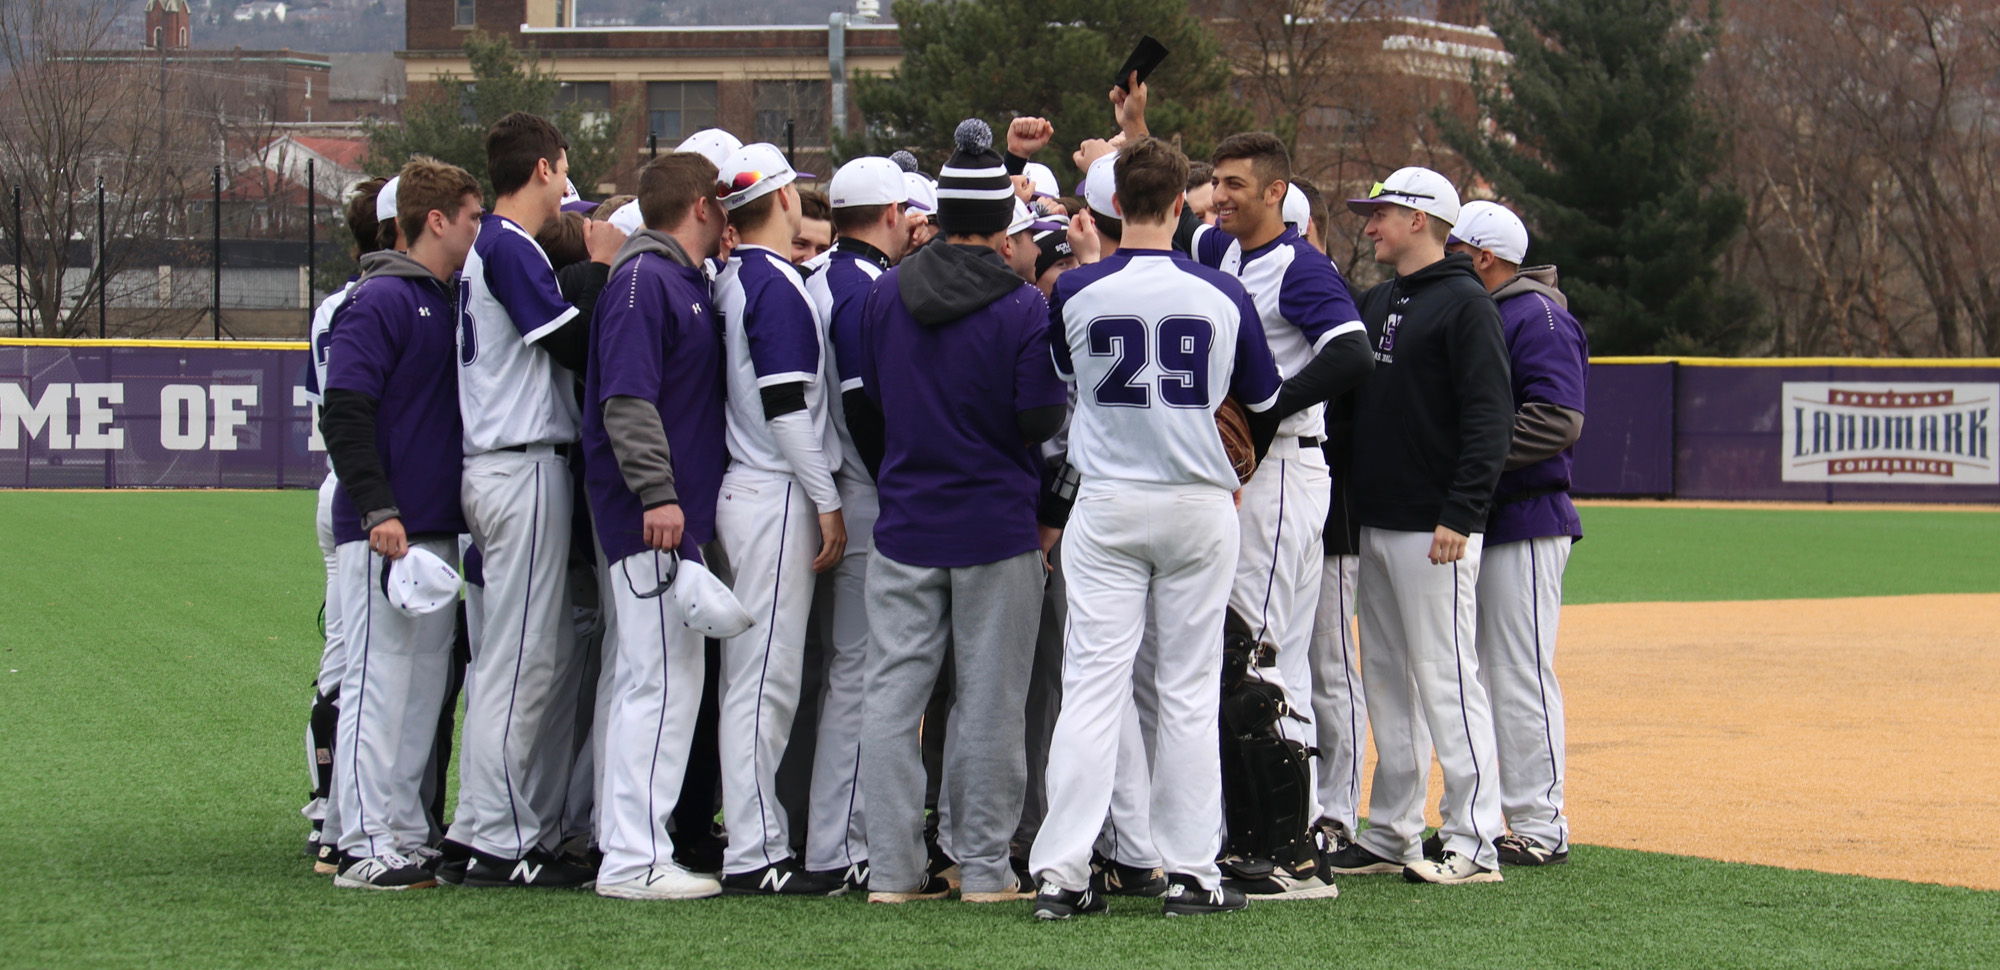 The baseball team's season ended with a heartbreaking, 10-inning loss to Catholic on Saturday at the Landmark Conference Championships. © Photo by Timothy R. Dougherty / doubleeaglephotography.com